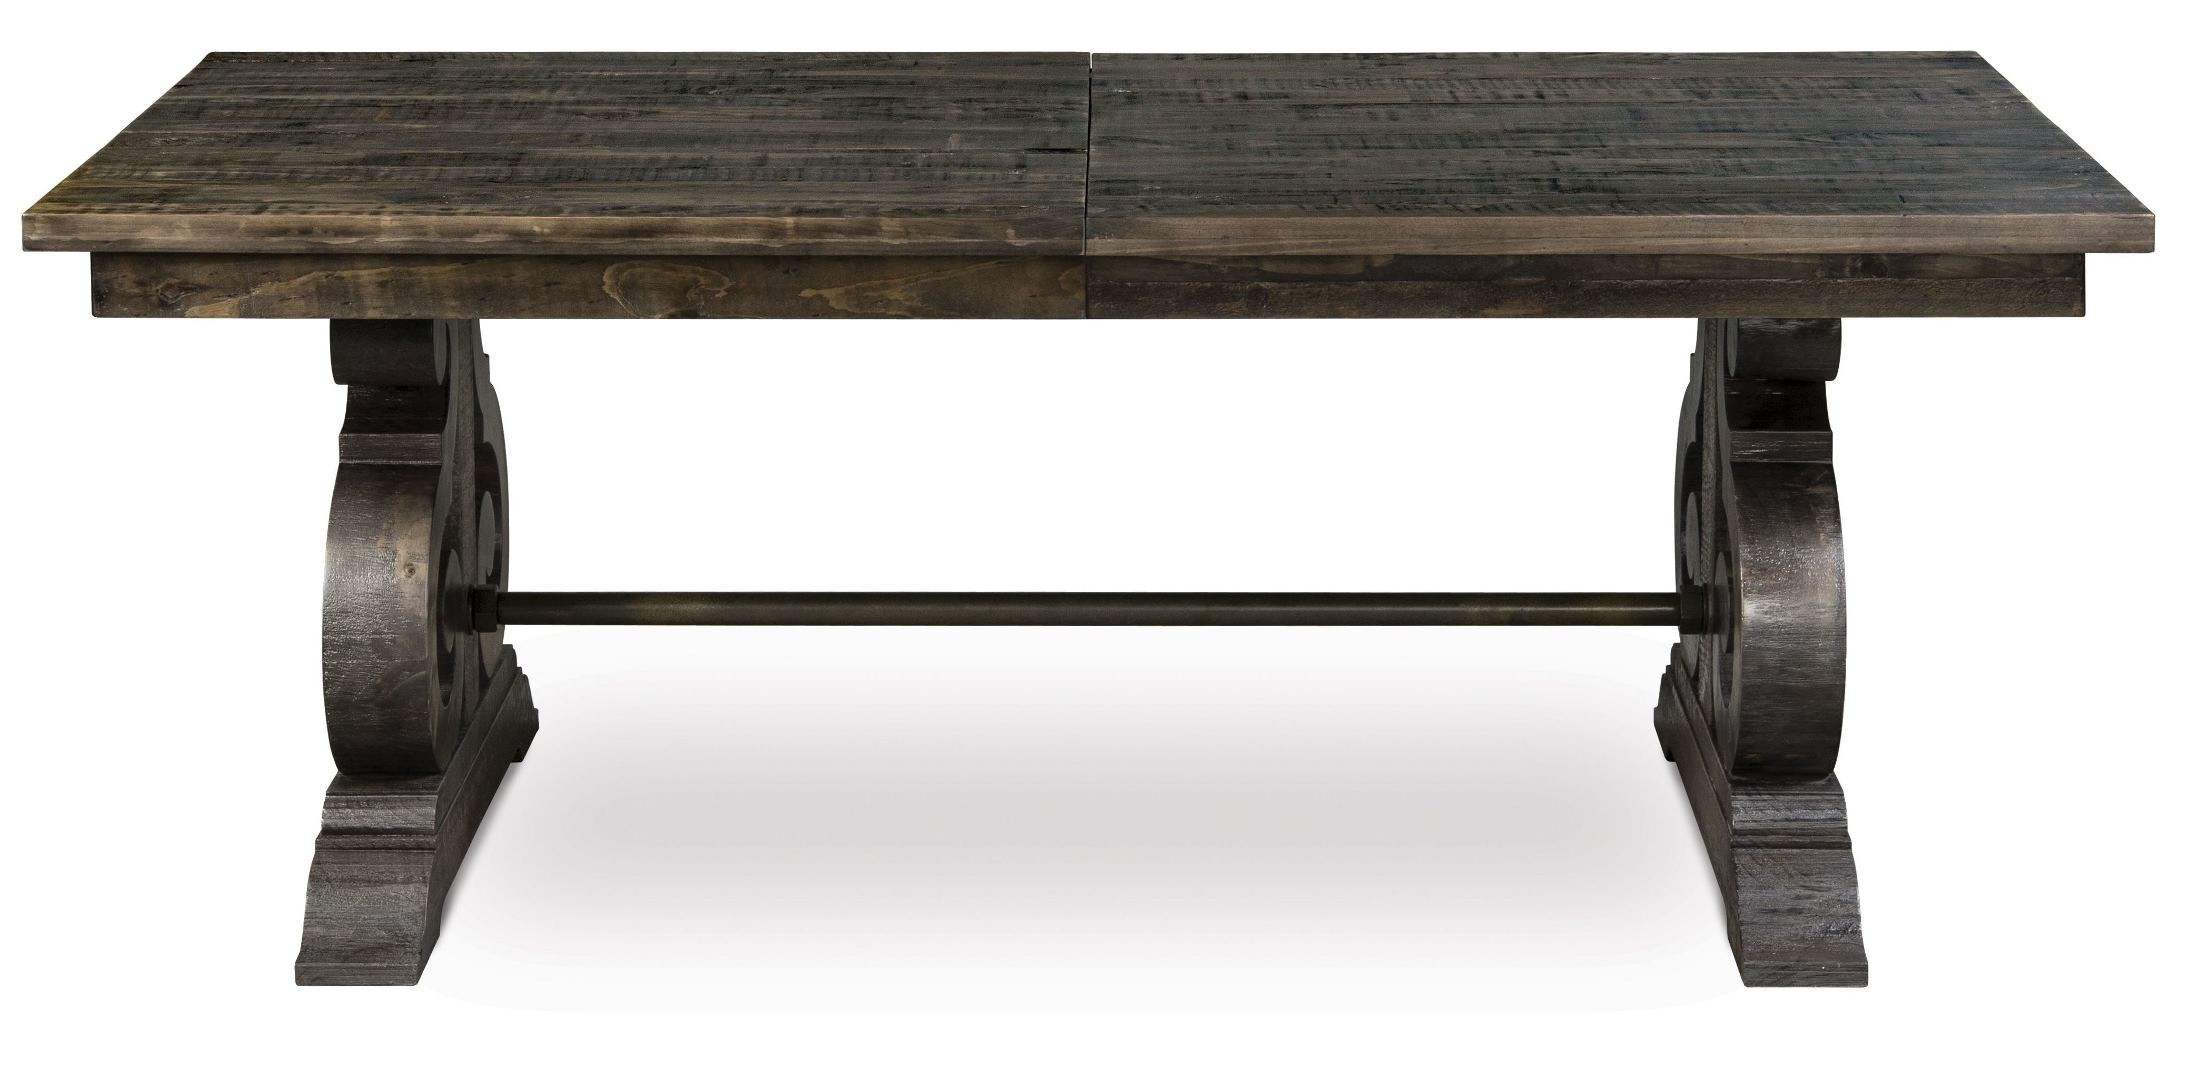 Bellamy Rectangular Dining Table From Magnussen Home (D2491 20T 20B) |  Coleman Furniture